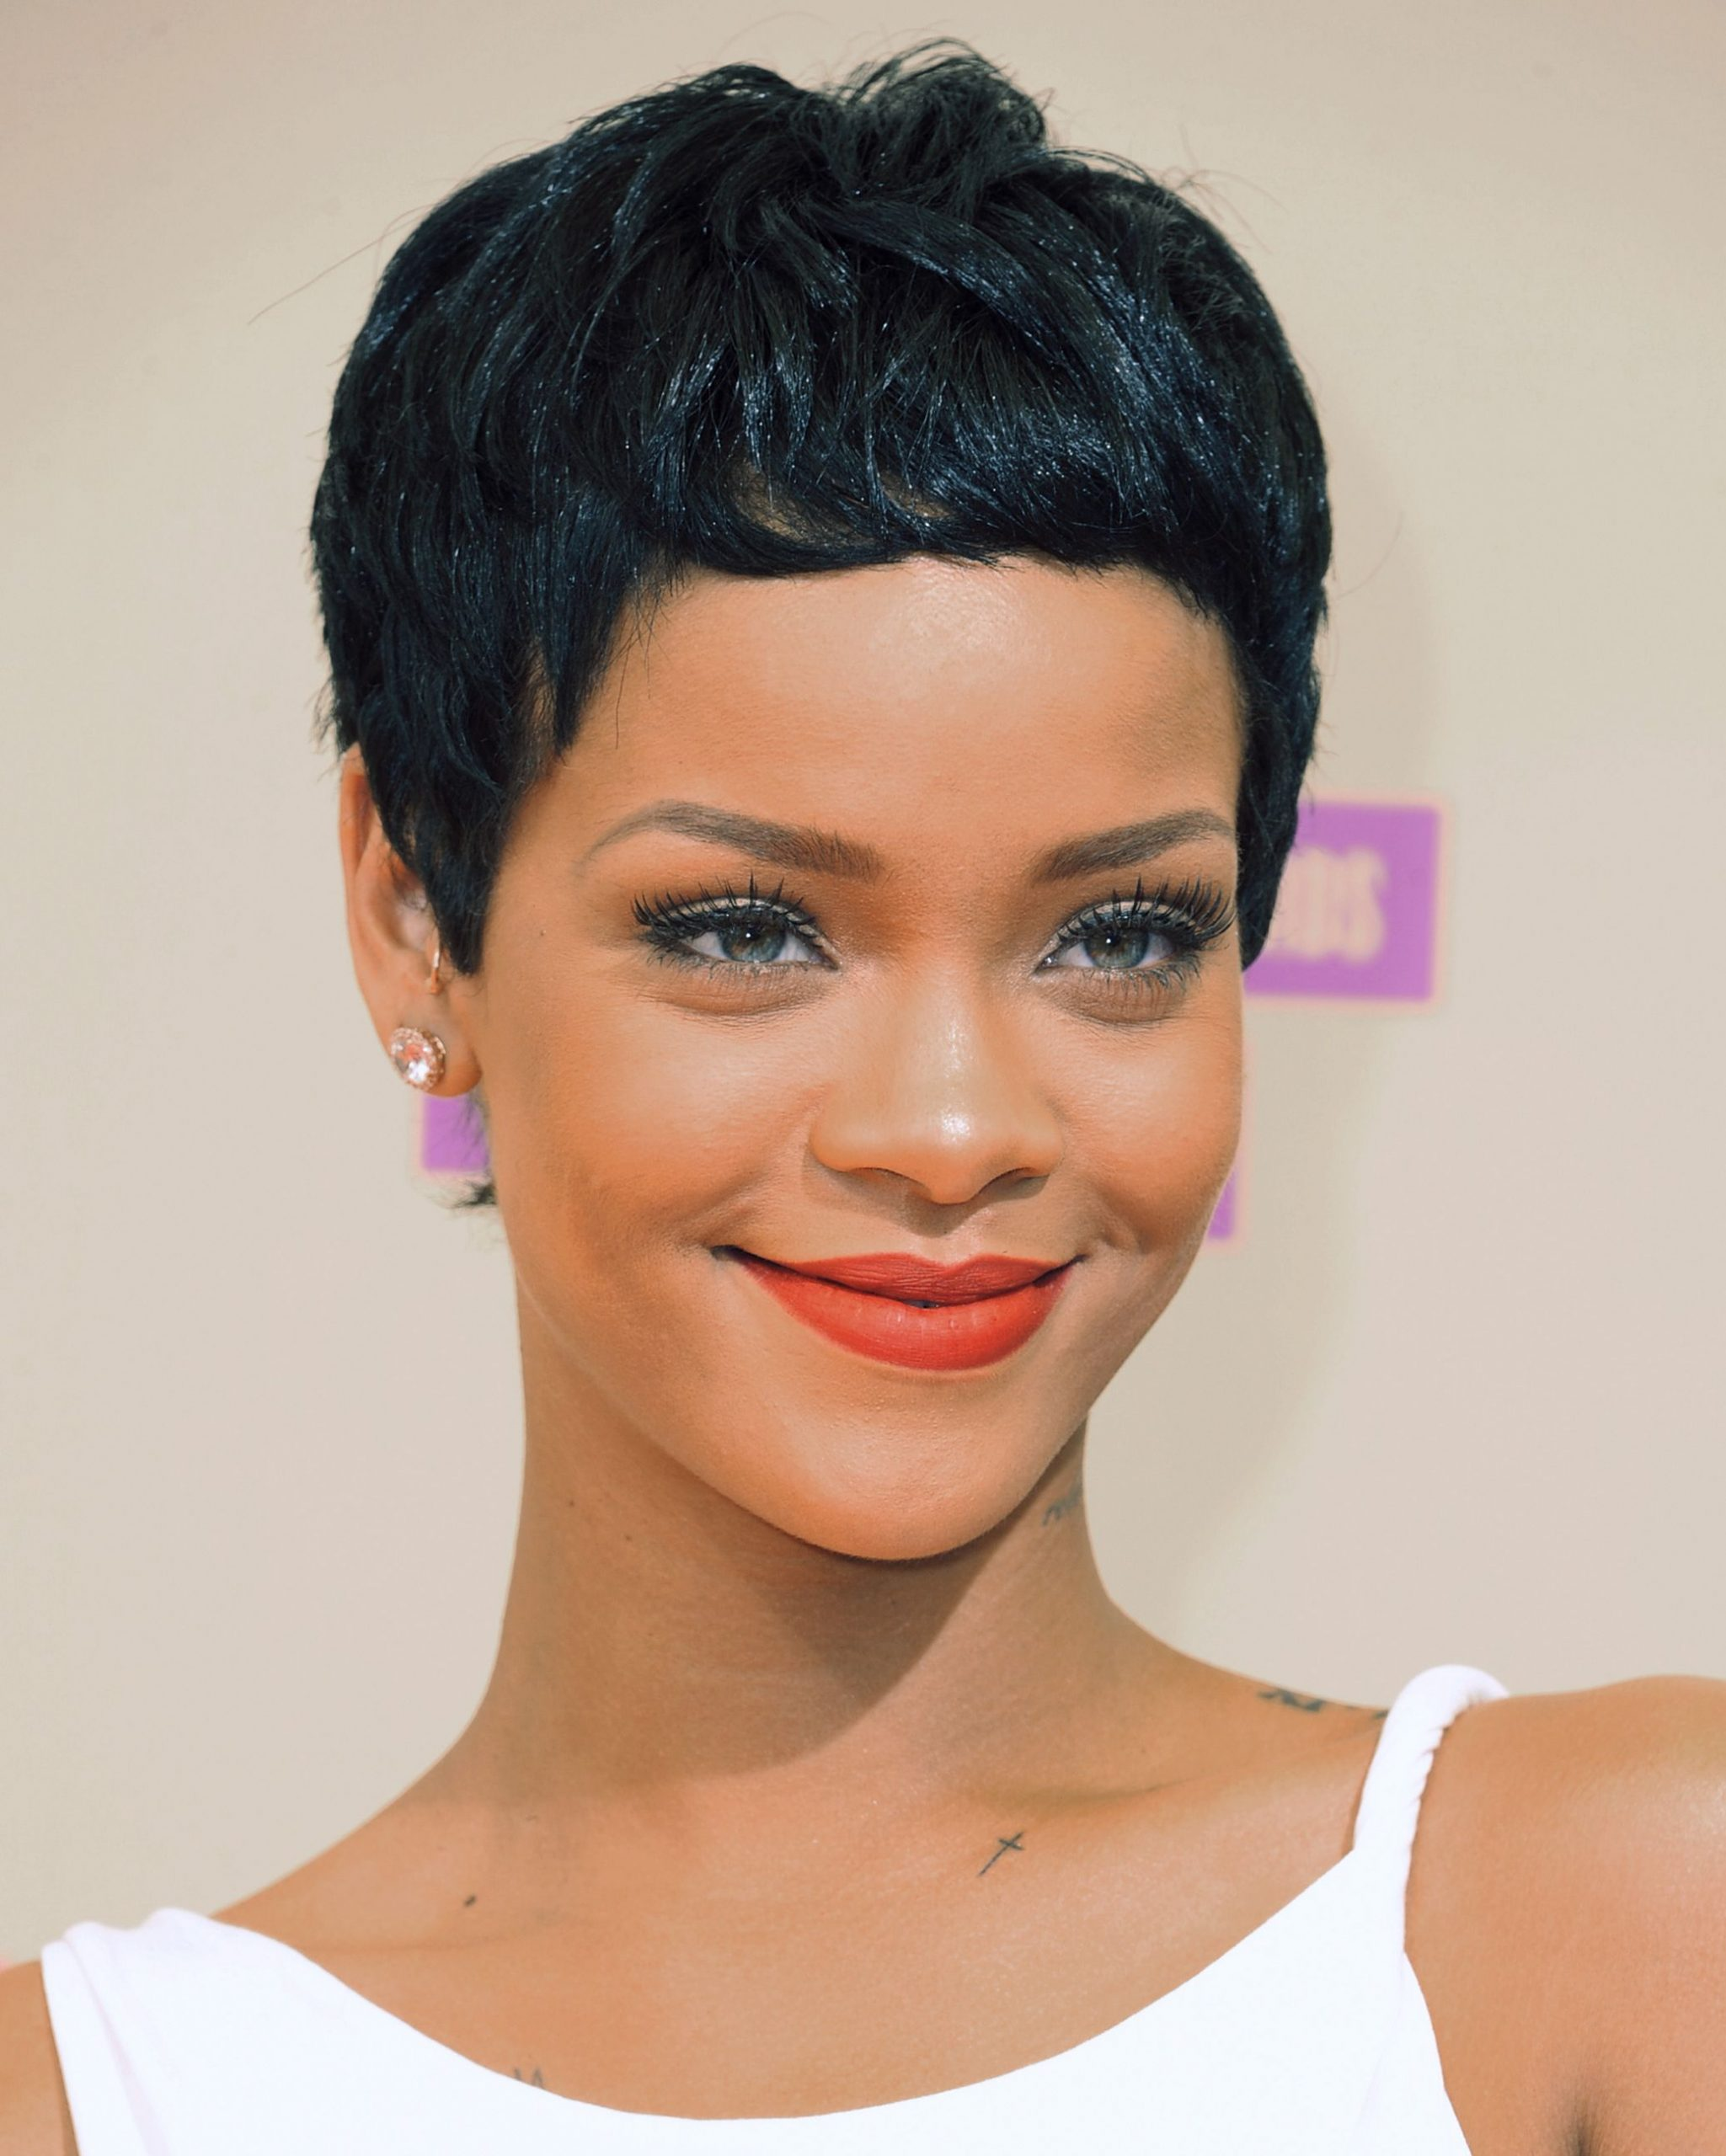 Rihanna's Pixie Cut Is Back!!! And She's Looking Hella CUTE!!!